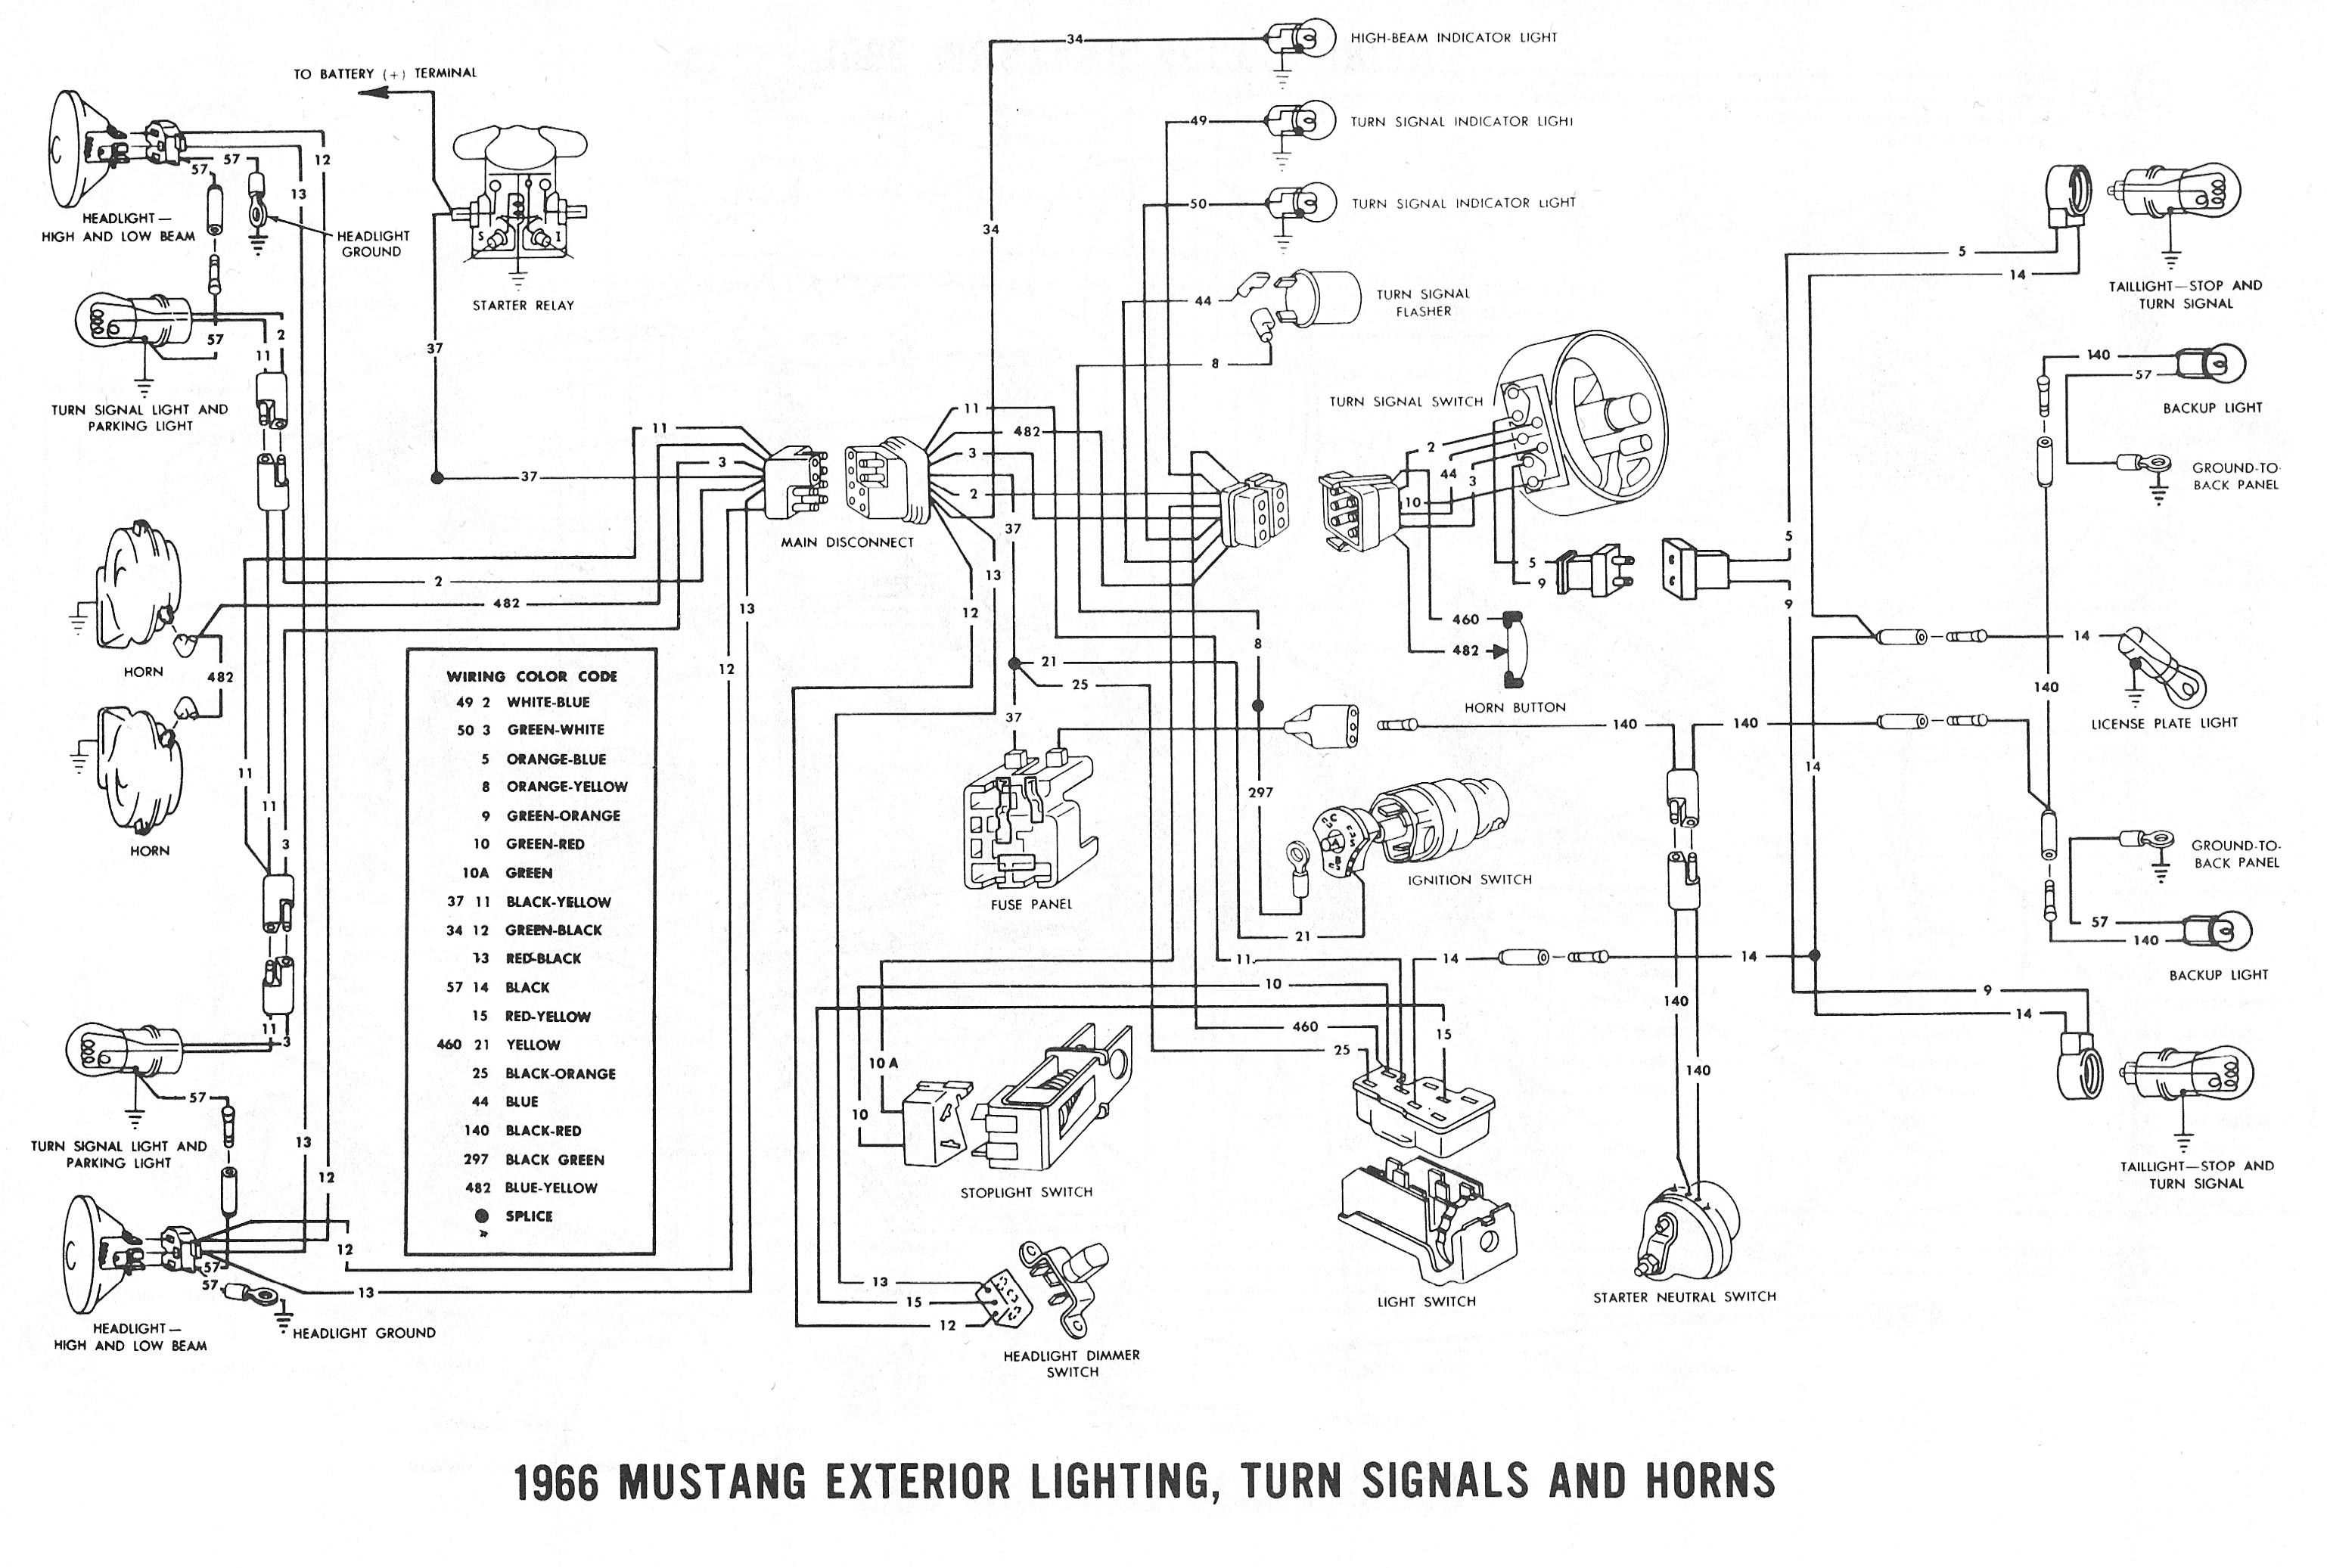 [SCHEMATICS_48IU]  162 65 Mustang Lights Wiring Diagram | Wiring Library | 2015 Mustang Wiring Diagram |  | Wiring Library